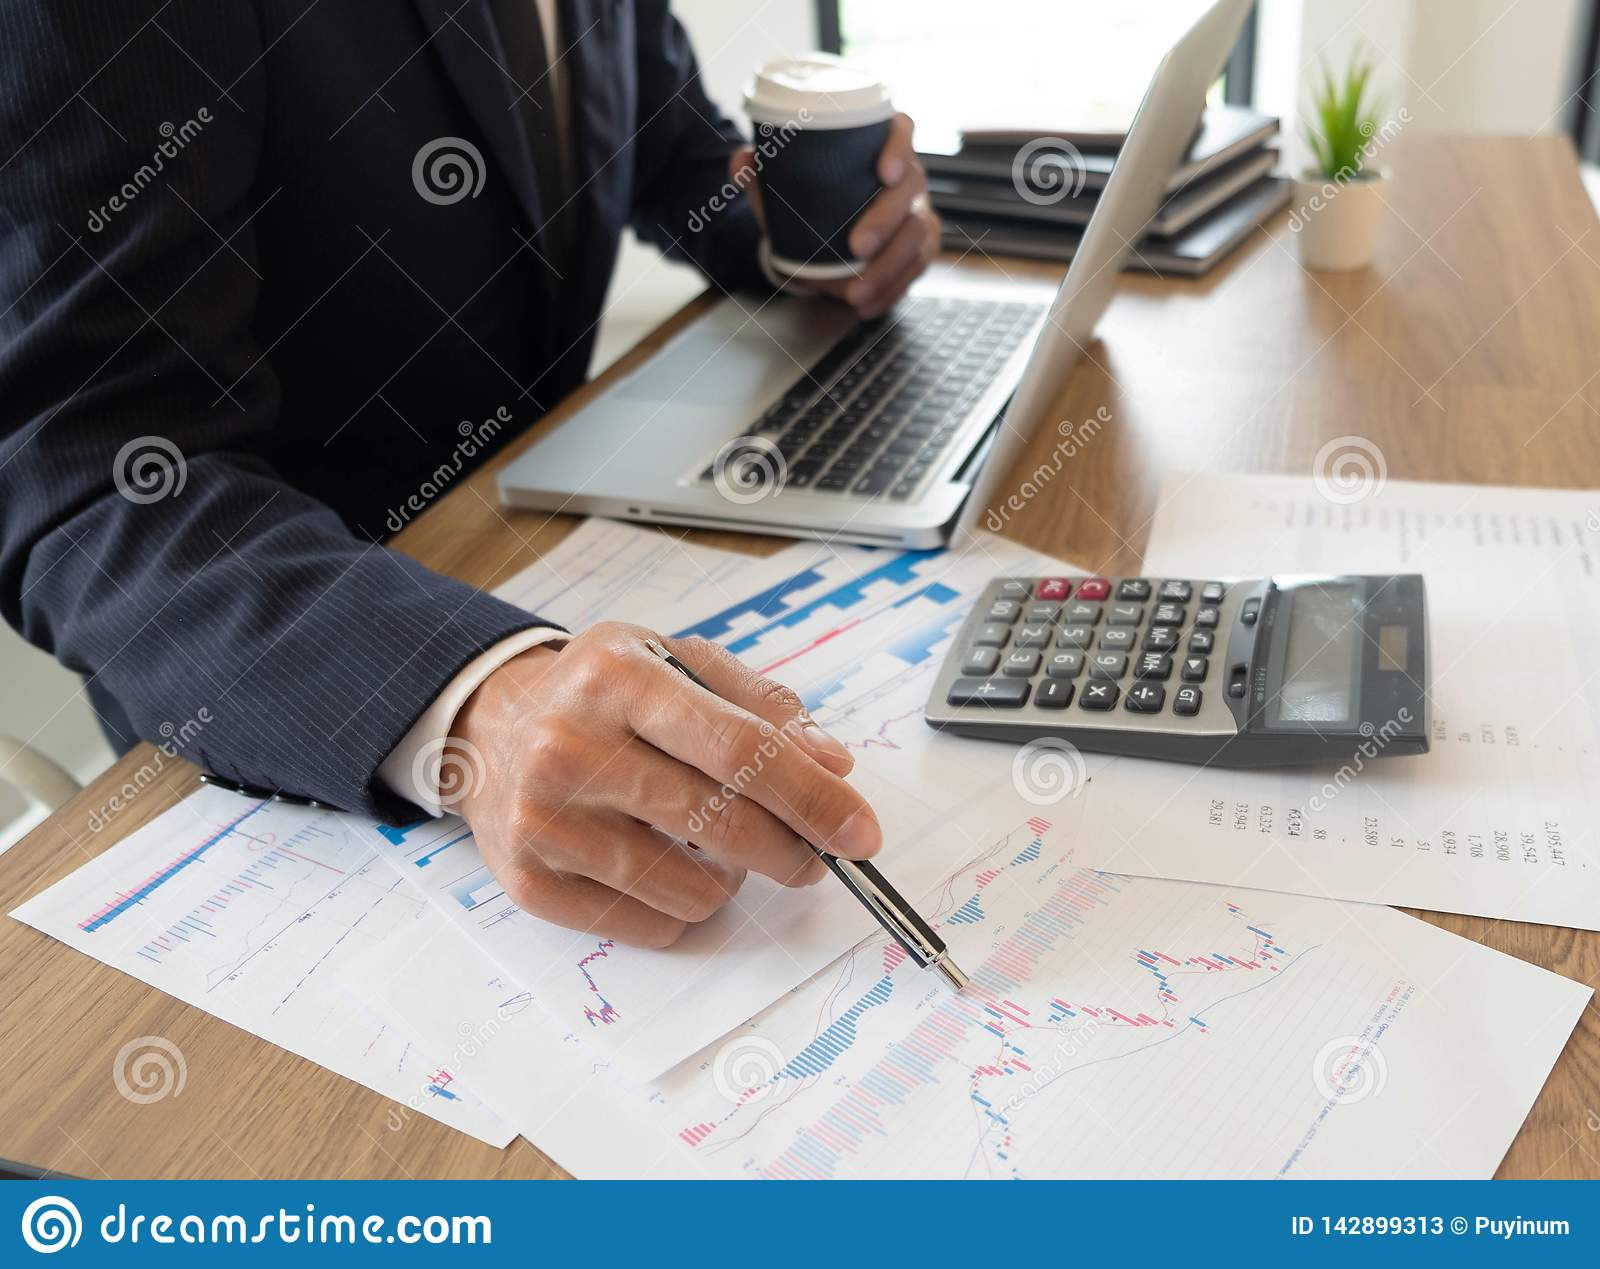 Business consulting, work, advice, auditing.